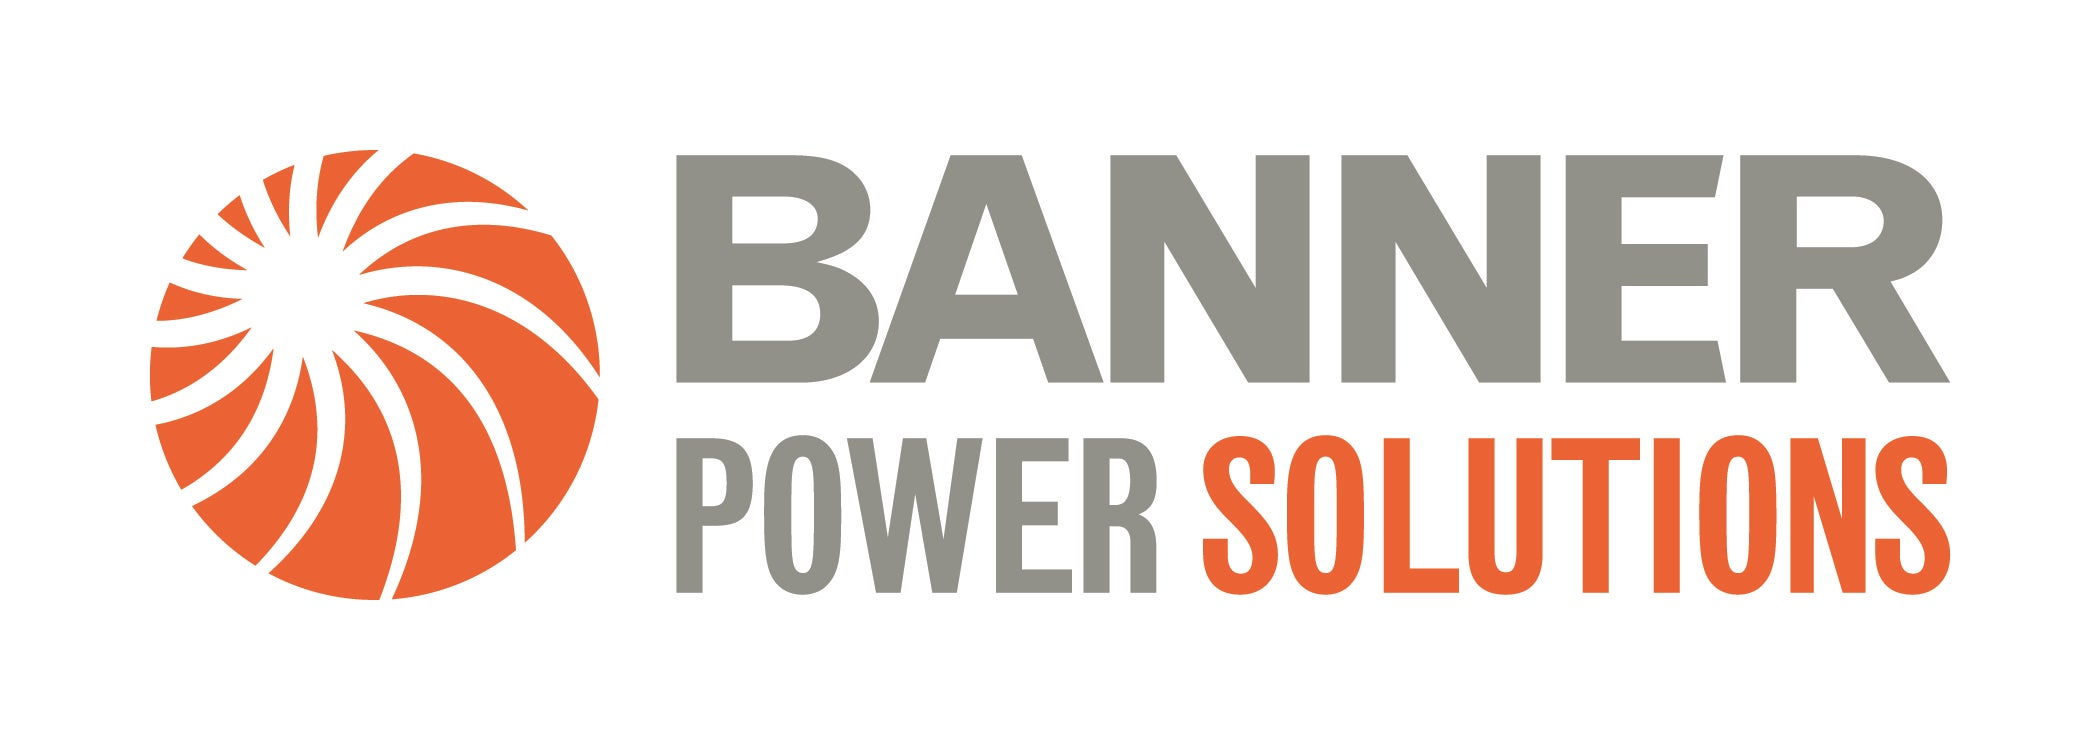 Banner Power Solutions